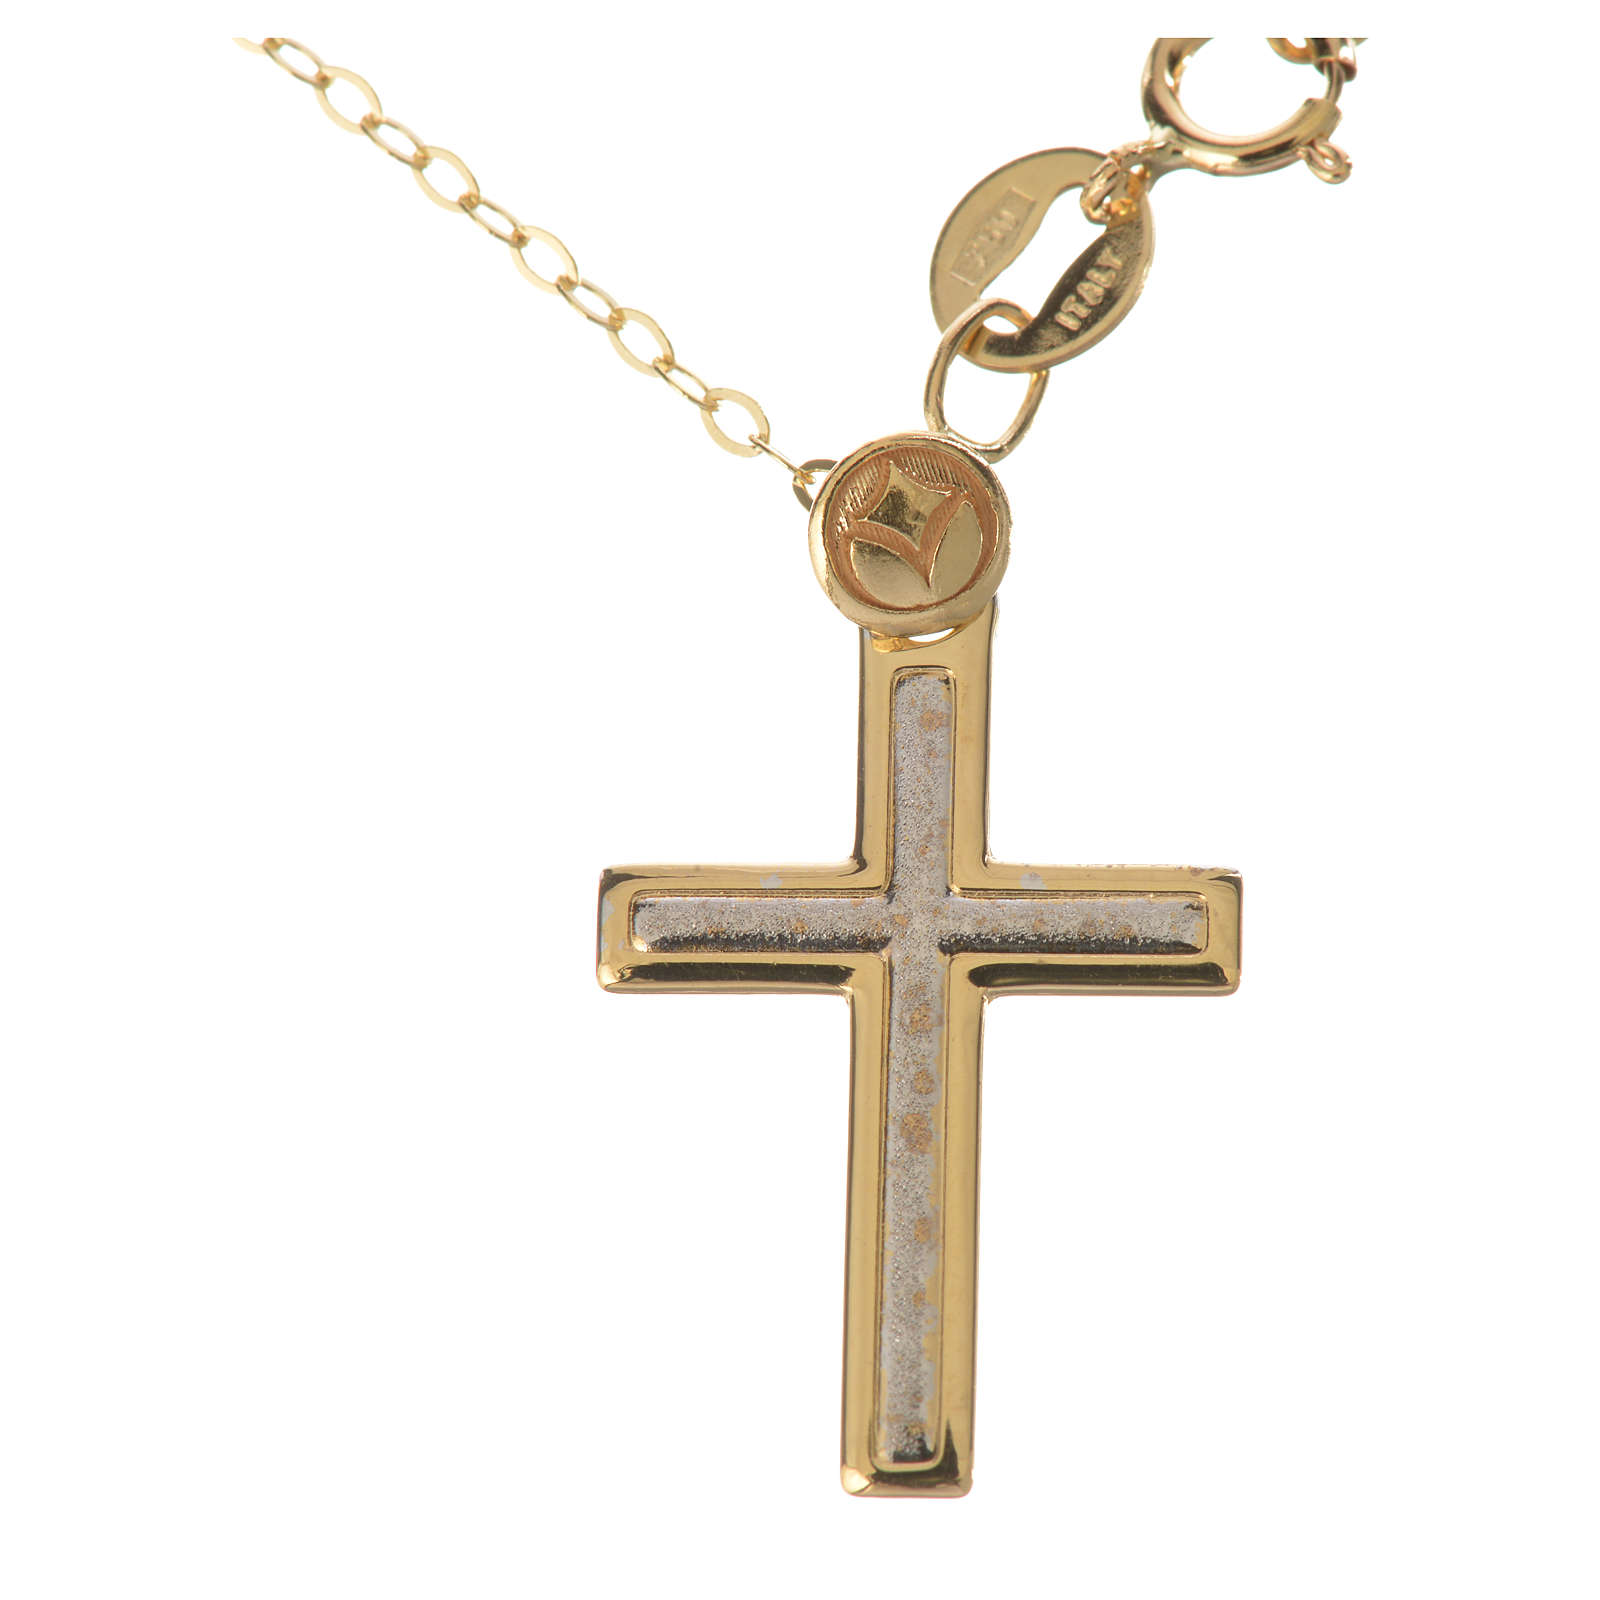 Necklace and cross pendant in 18k gold 1,74 grams 4